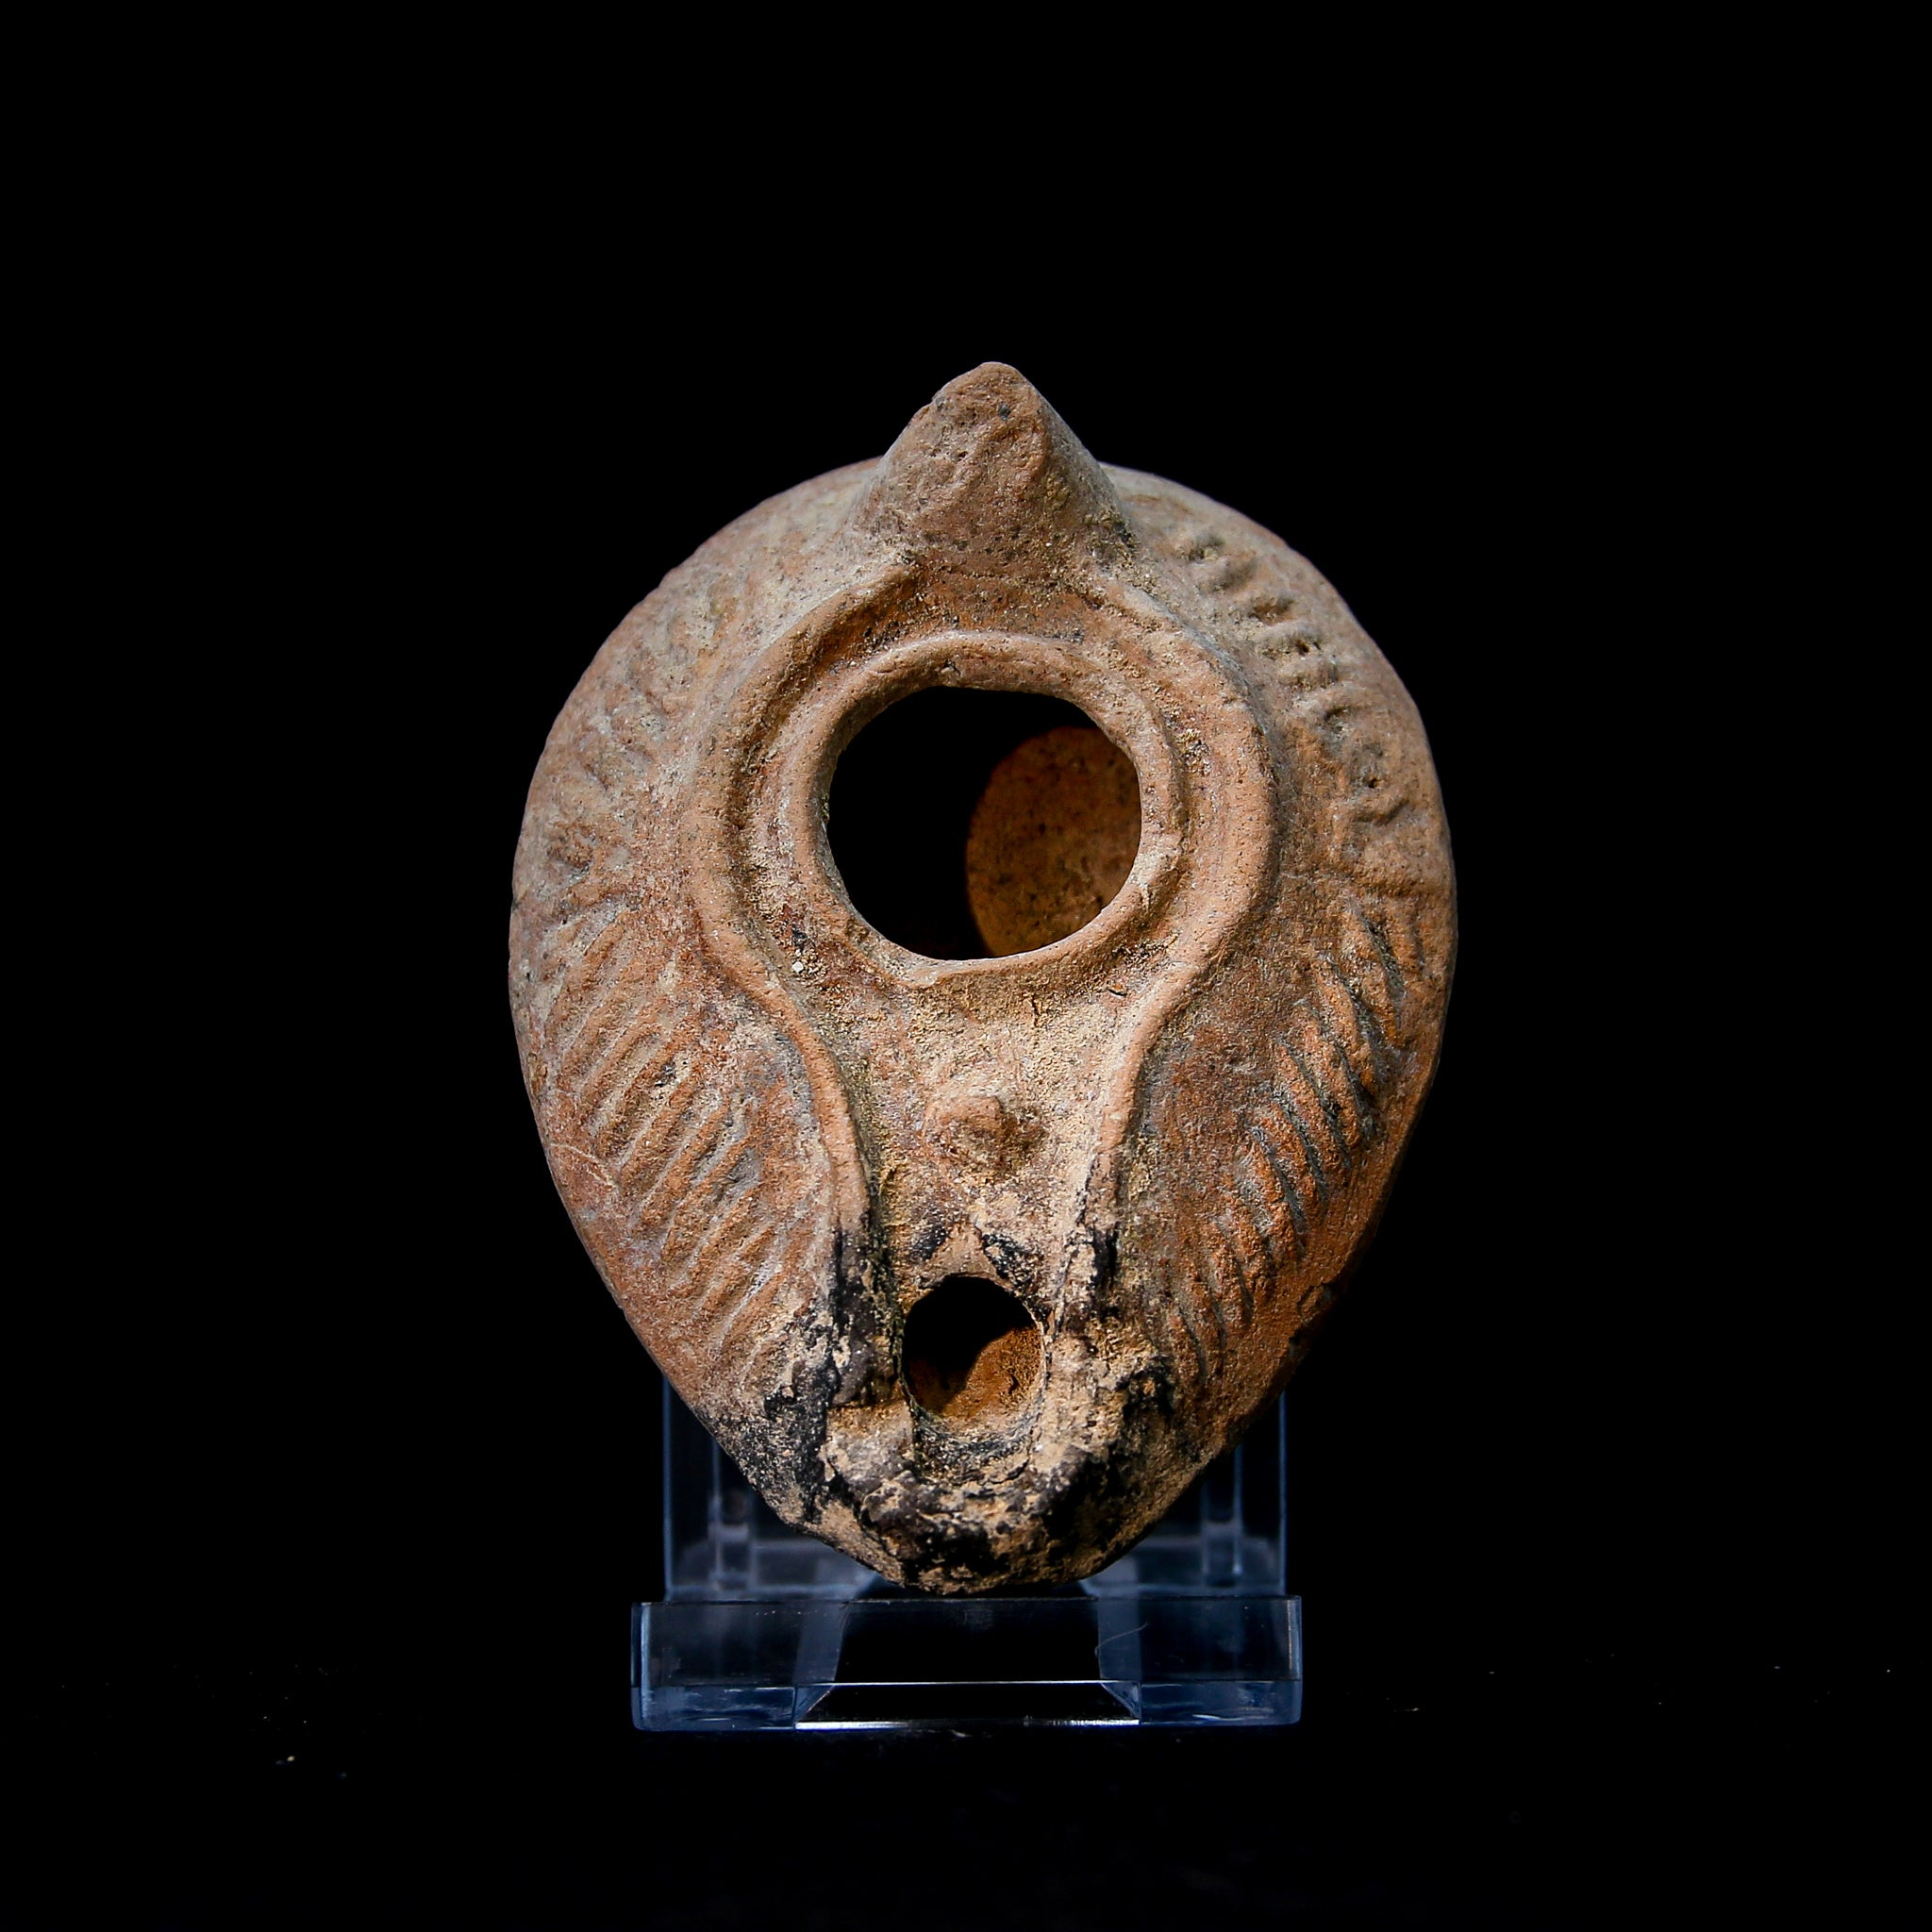 A BYZANTINE OIL LAMP | CIRCA 5TH–8TH CENTURY AD